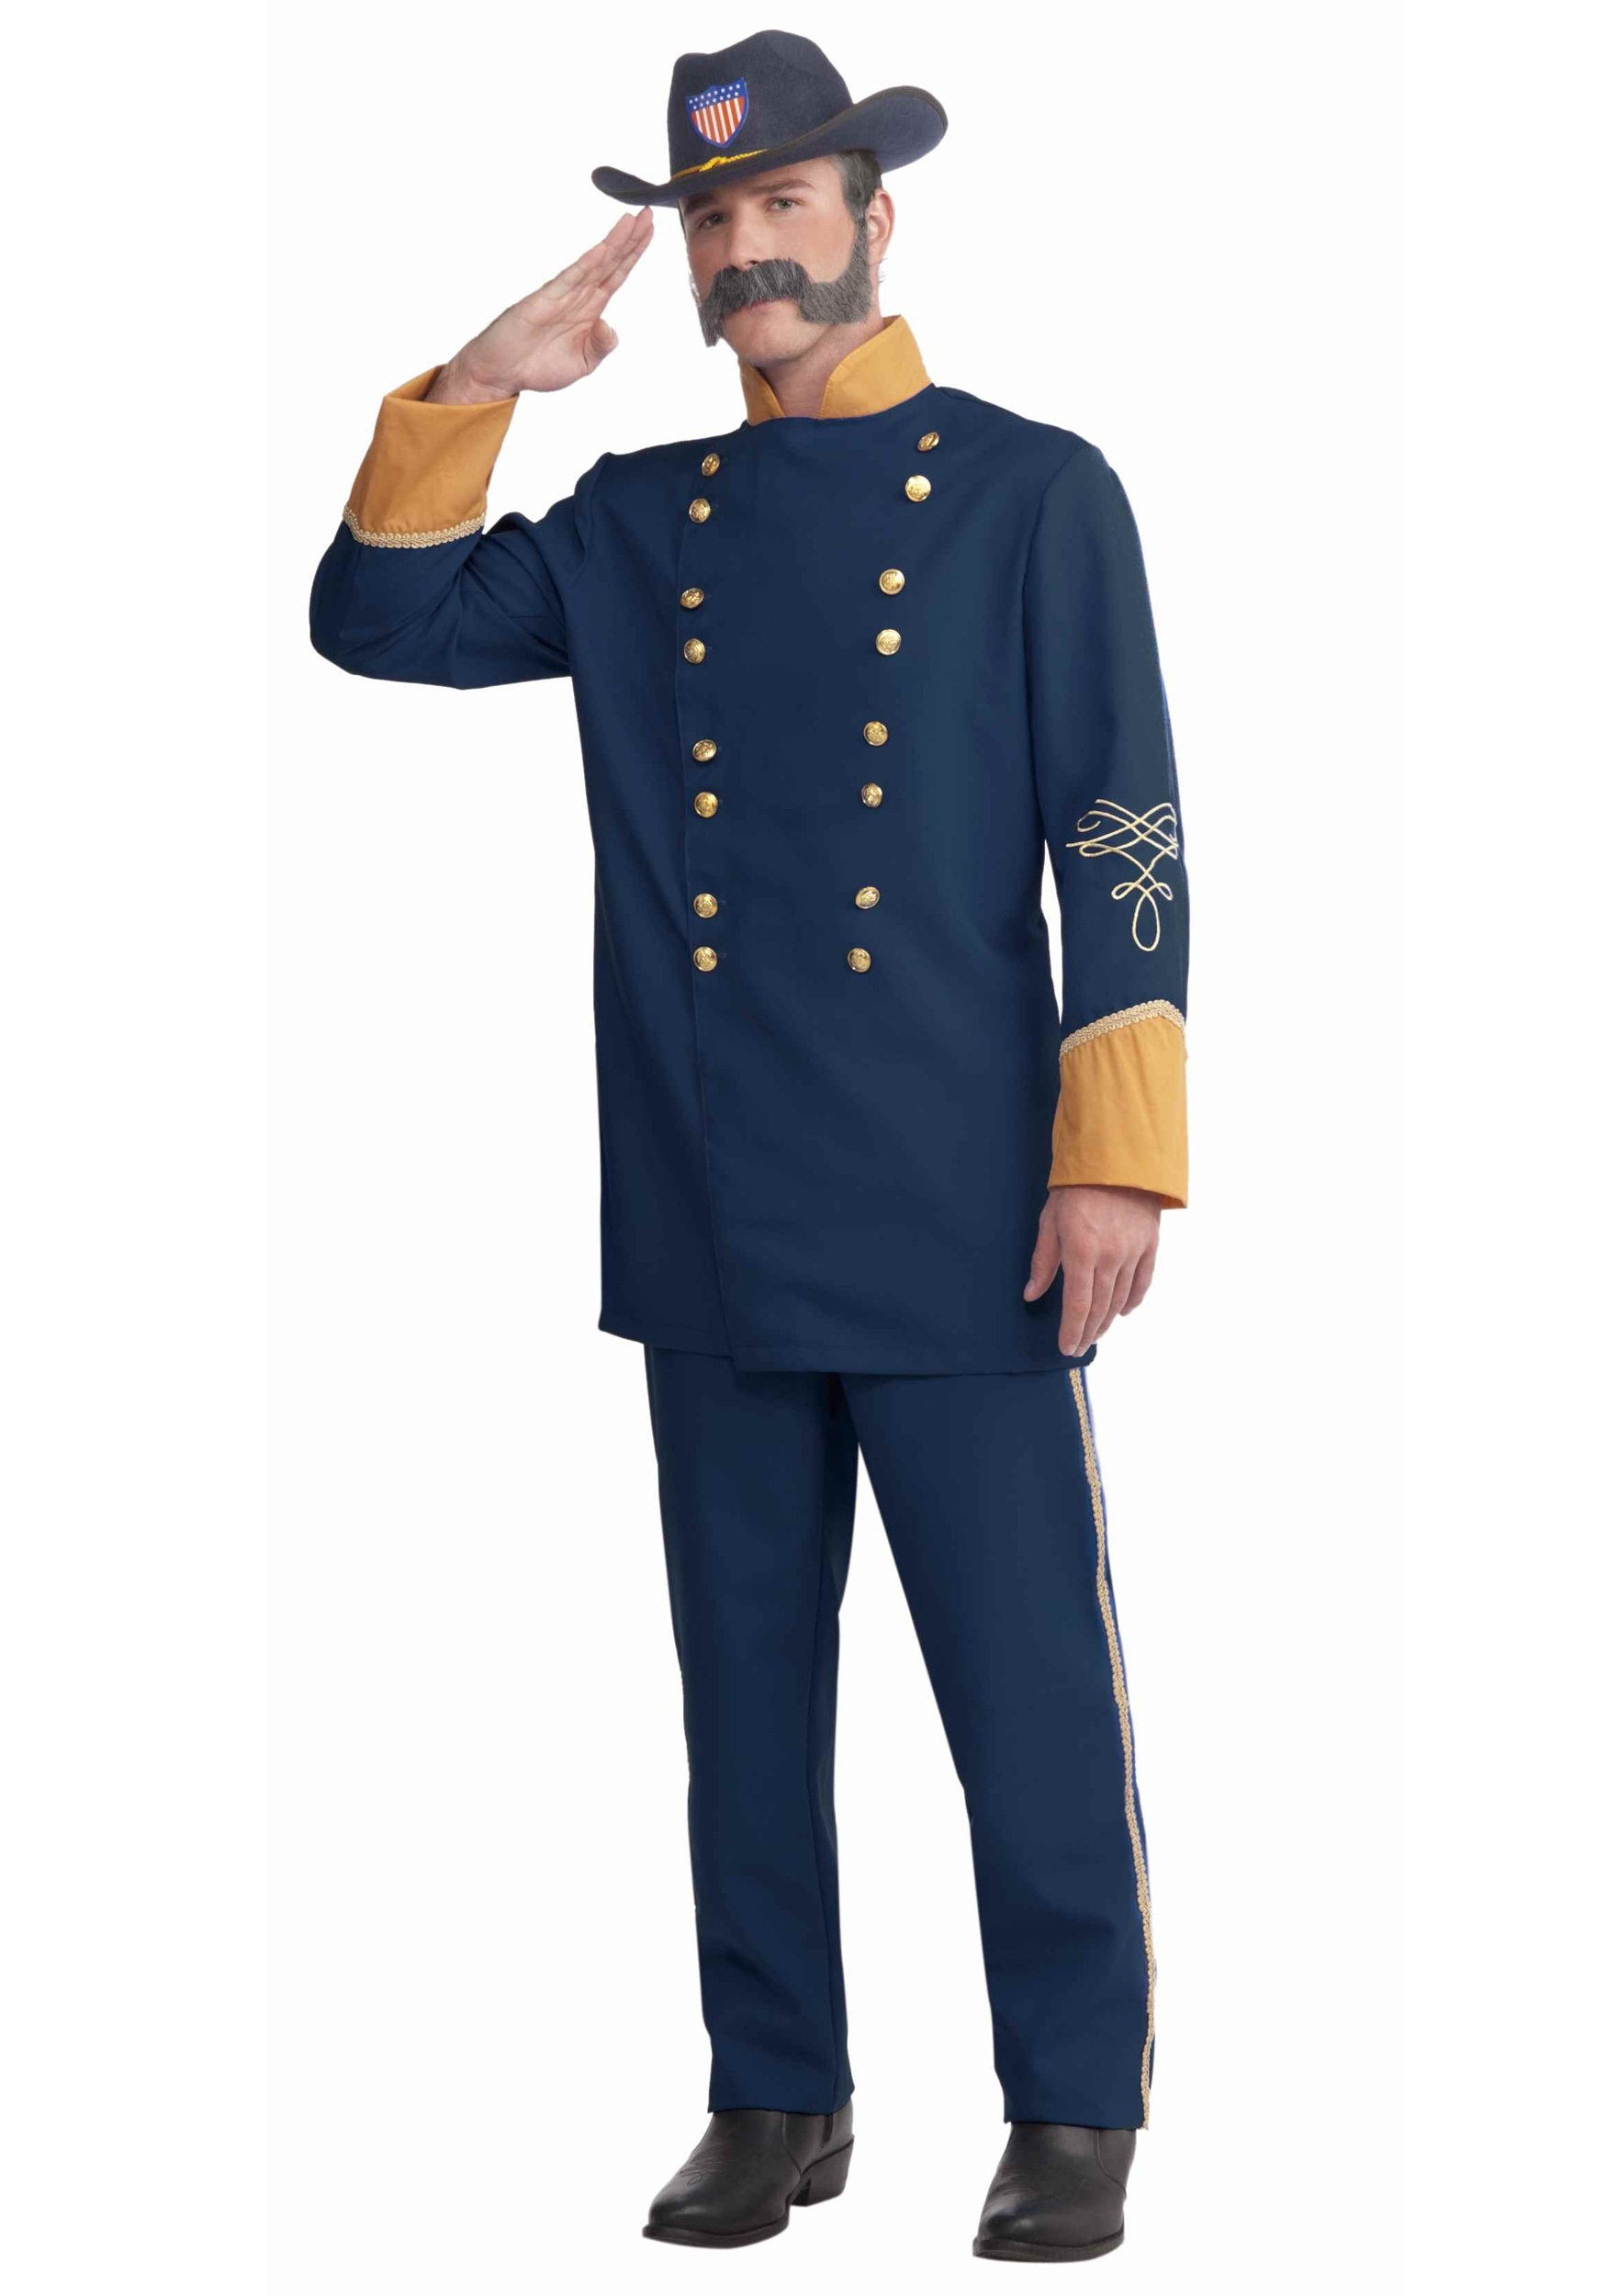 Union Civil War Uniform 86